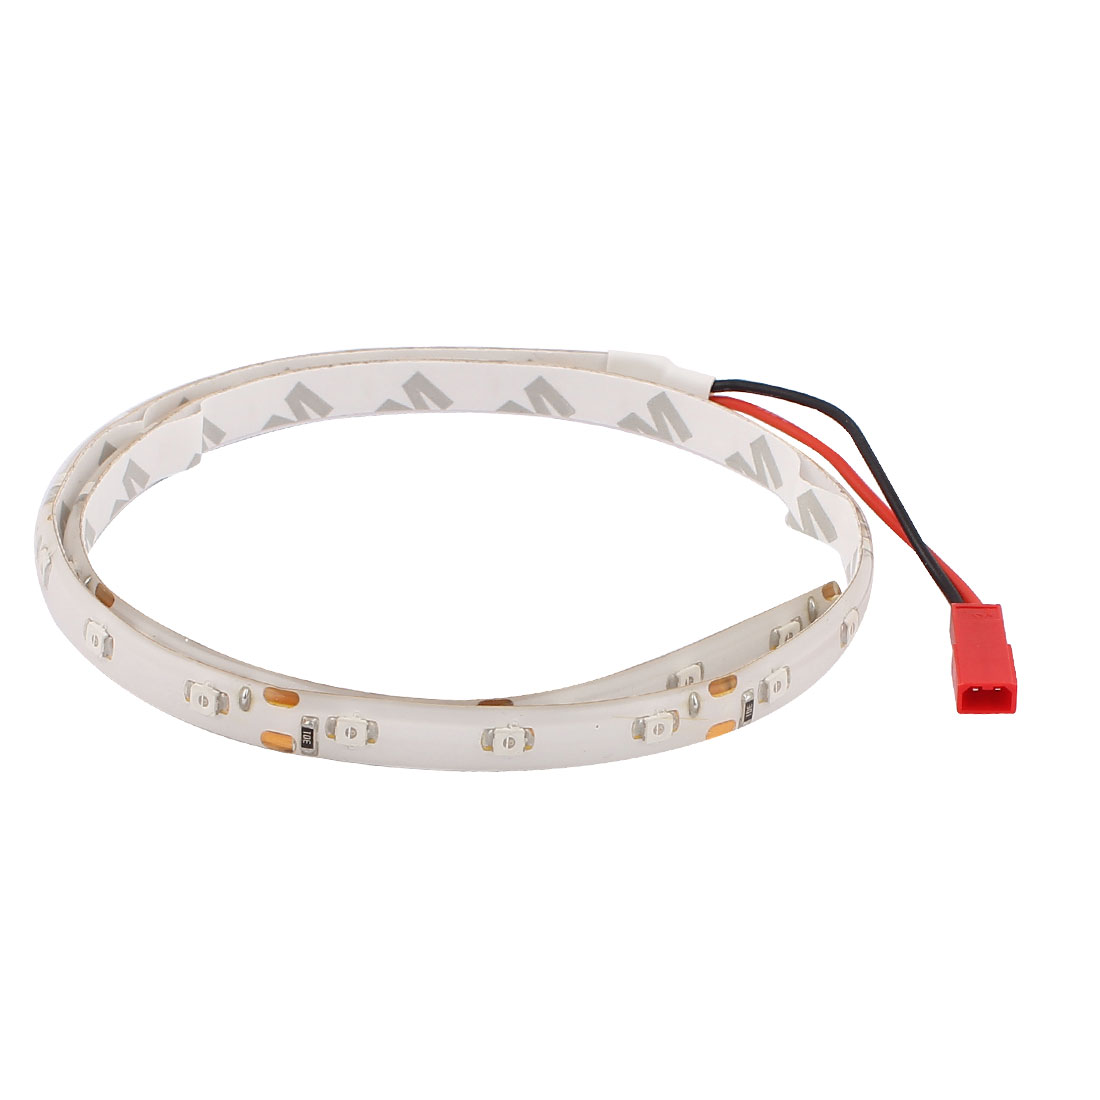 DC 12V 50cm Waterproof Red LED Night Navigation Strip Light for RC Model Airplane